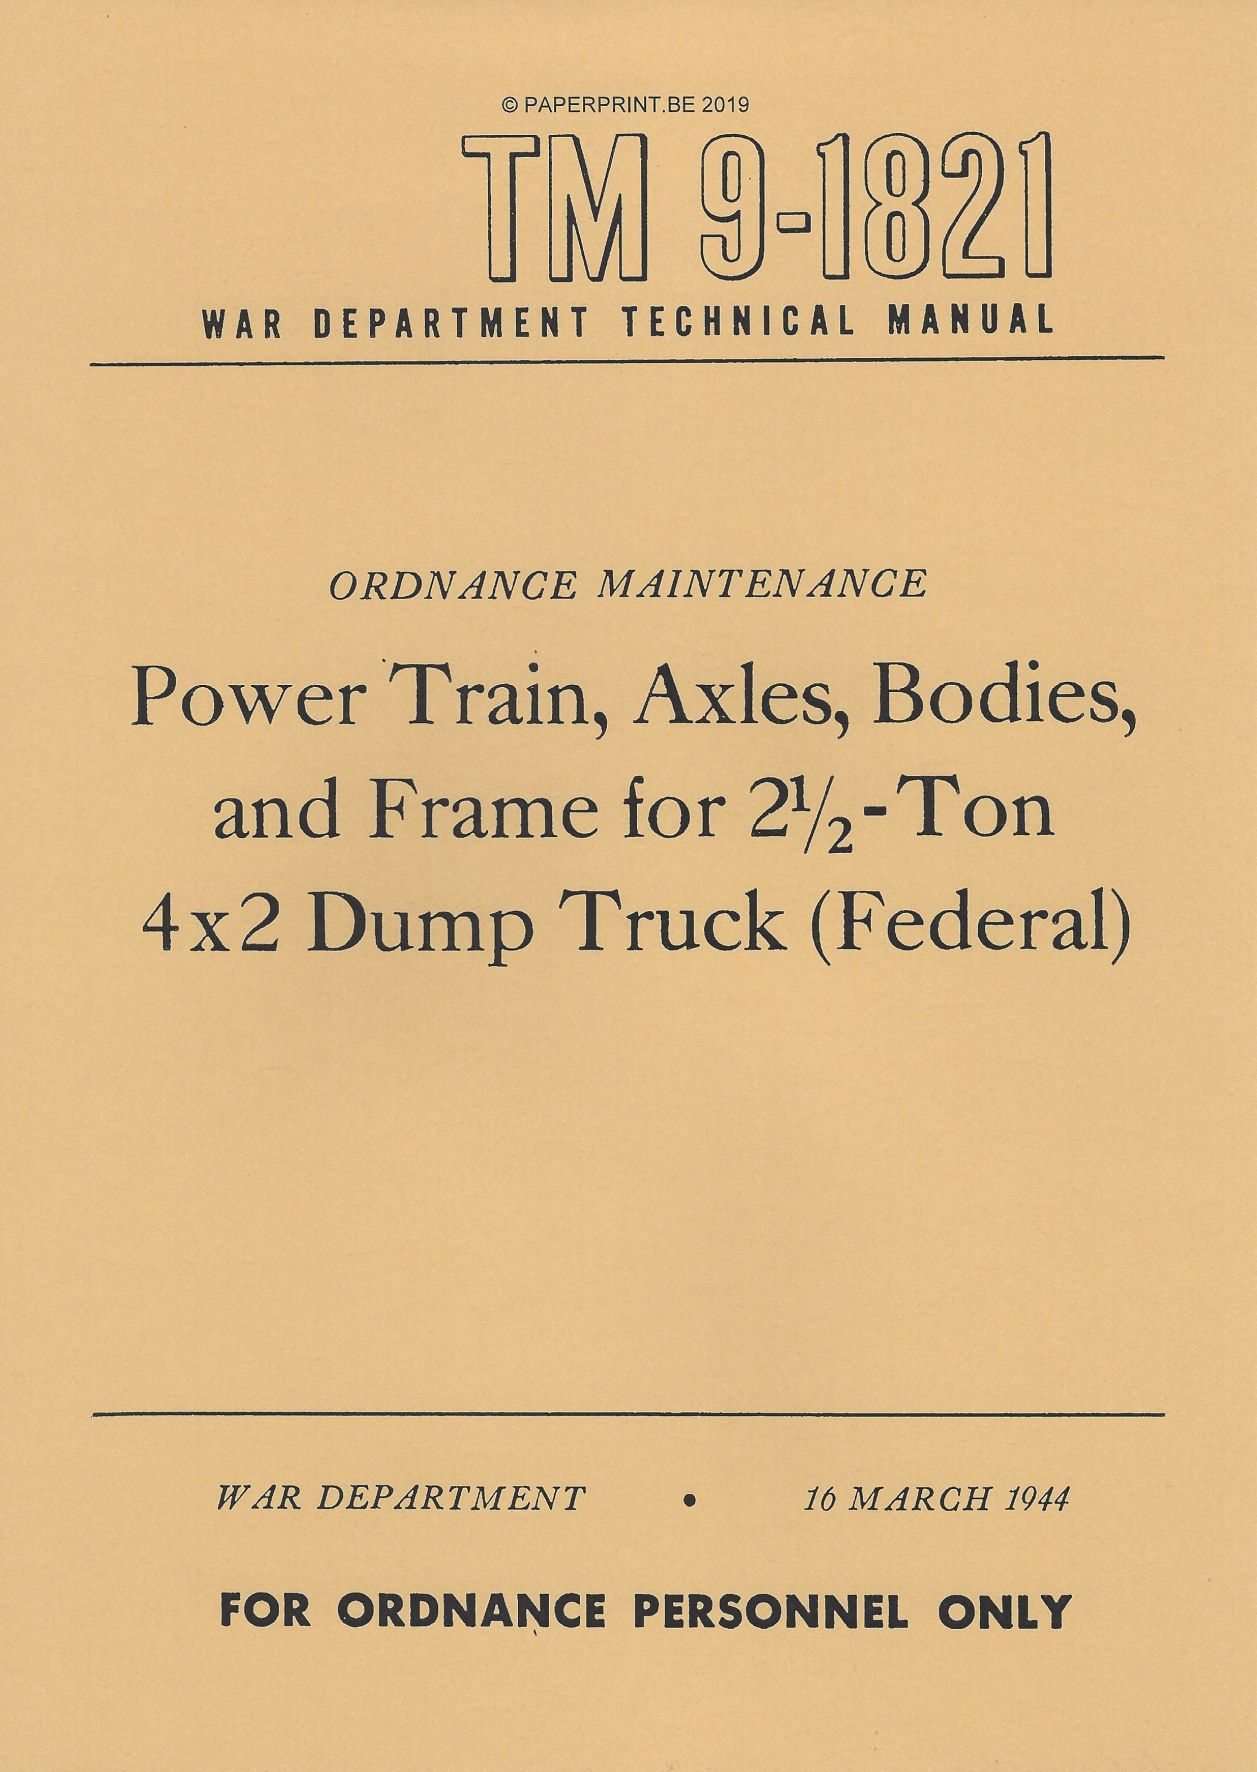 TM 9-1821 US POWER TRAIN, AXLES, BODIES AND FRAME FOR FEDERAL 2 ½ TON 4x2 DUMP TRUCK